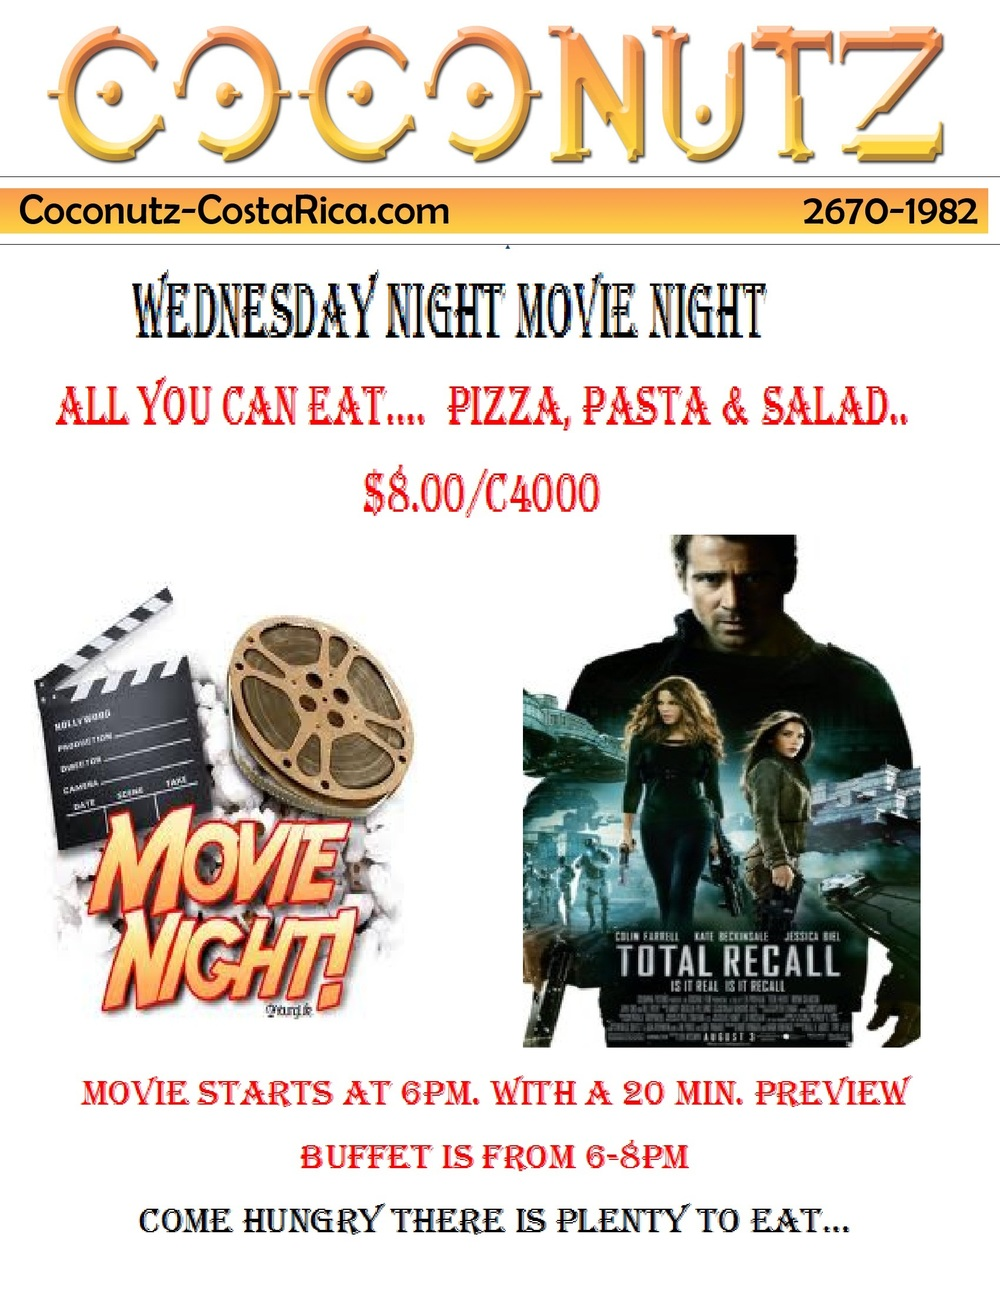 WEDNESDAY NIGHT MOVIE TOTAL RECALL...jpg